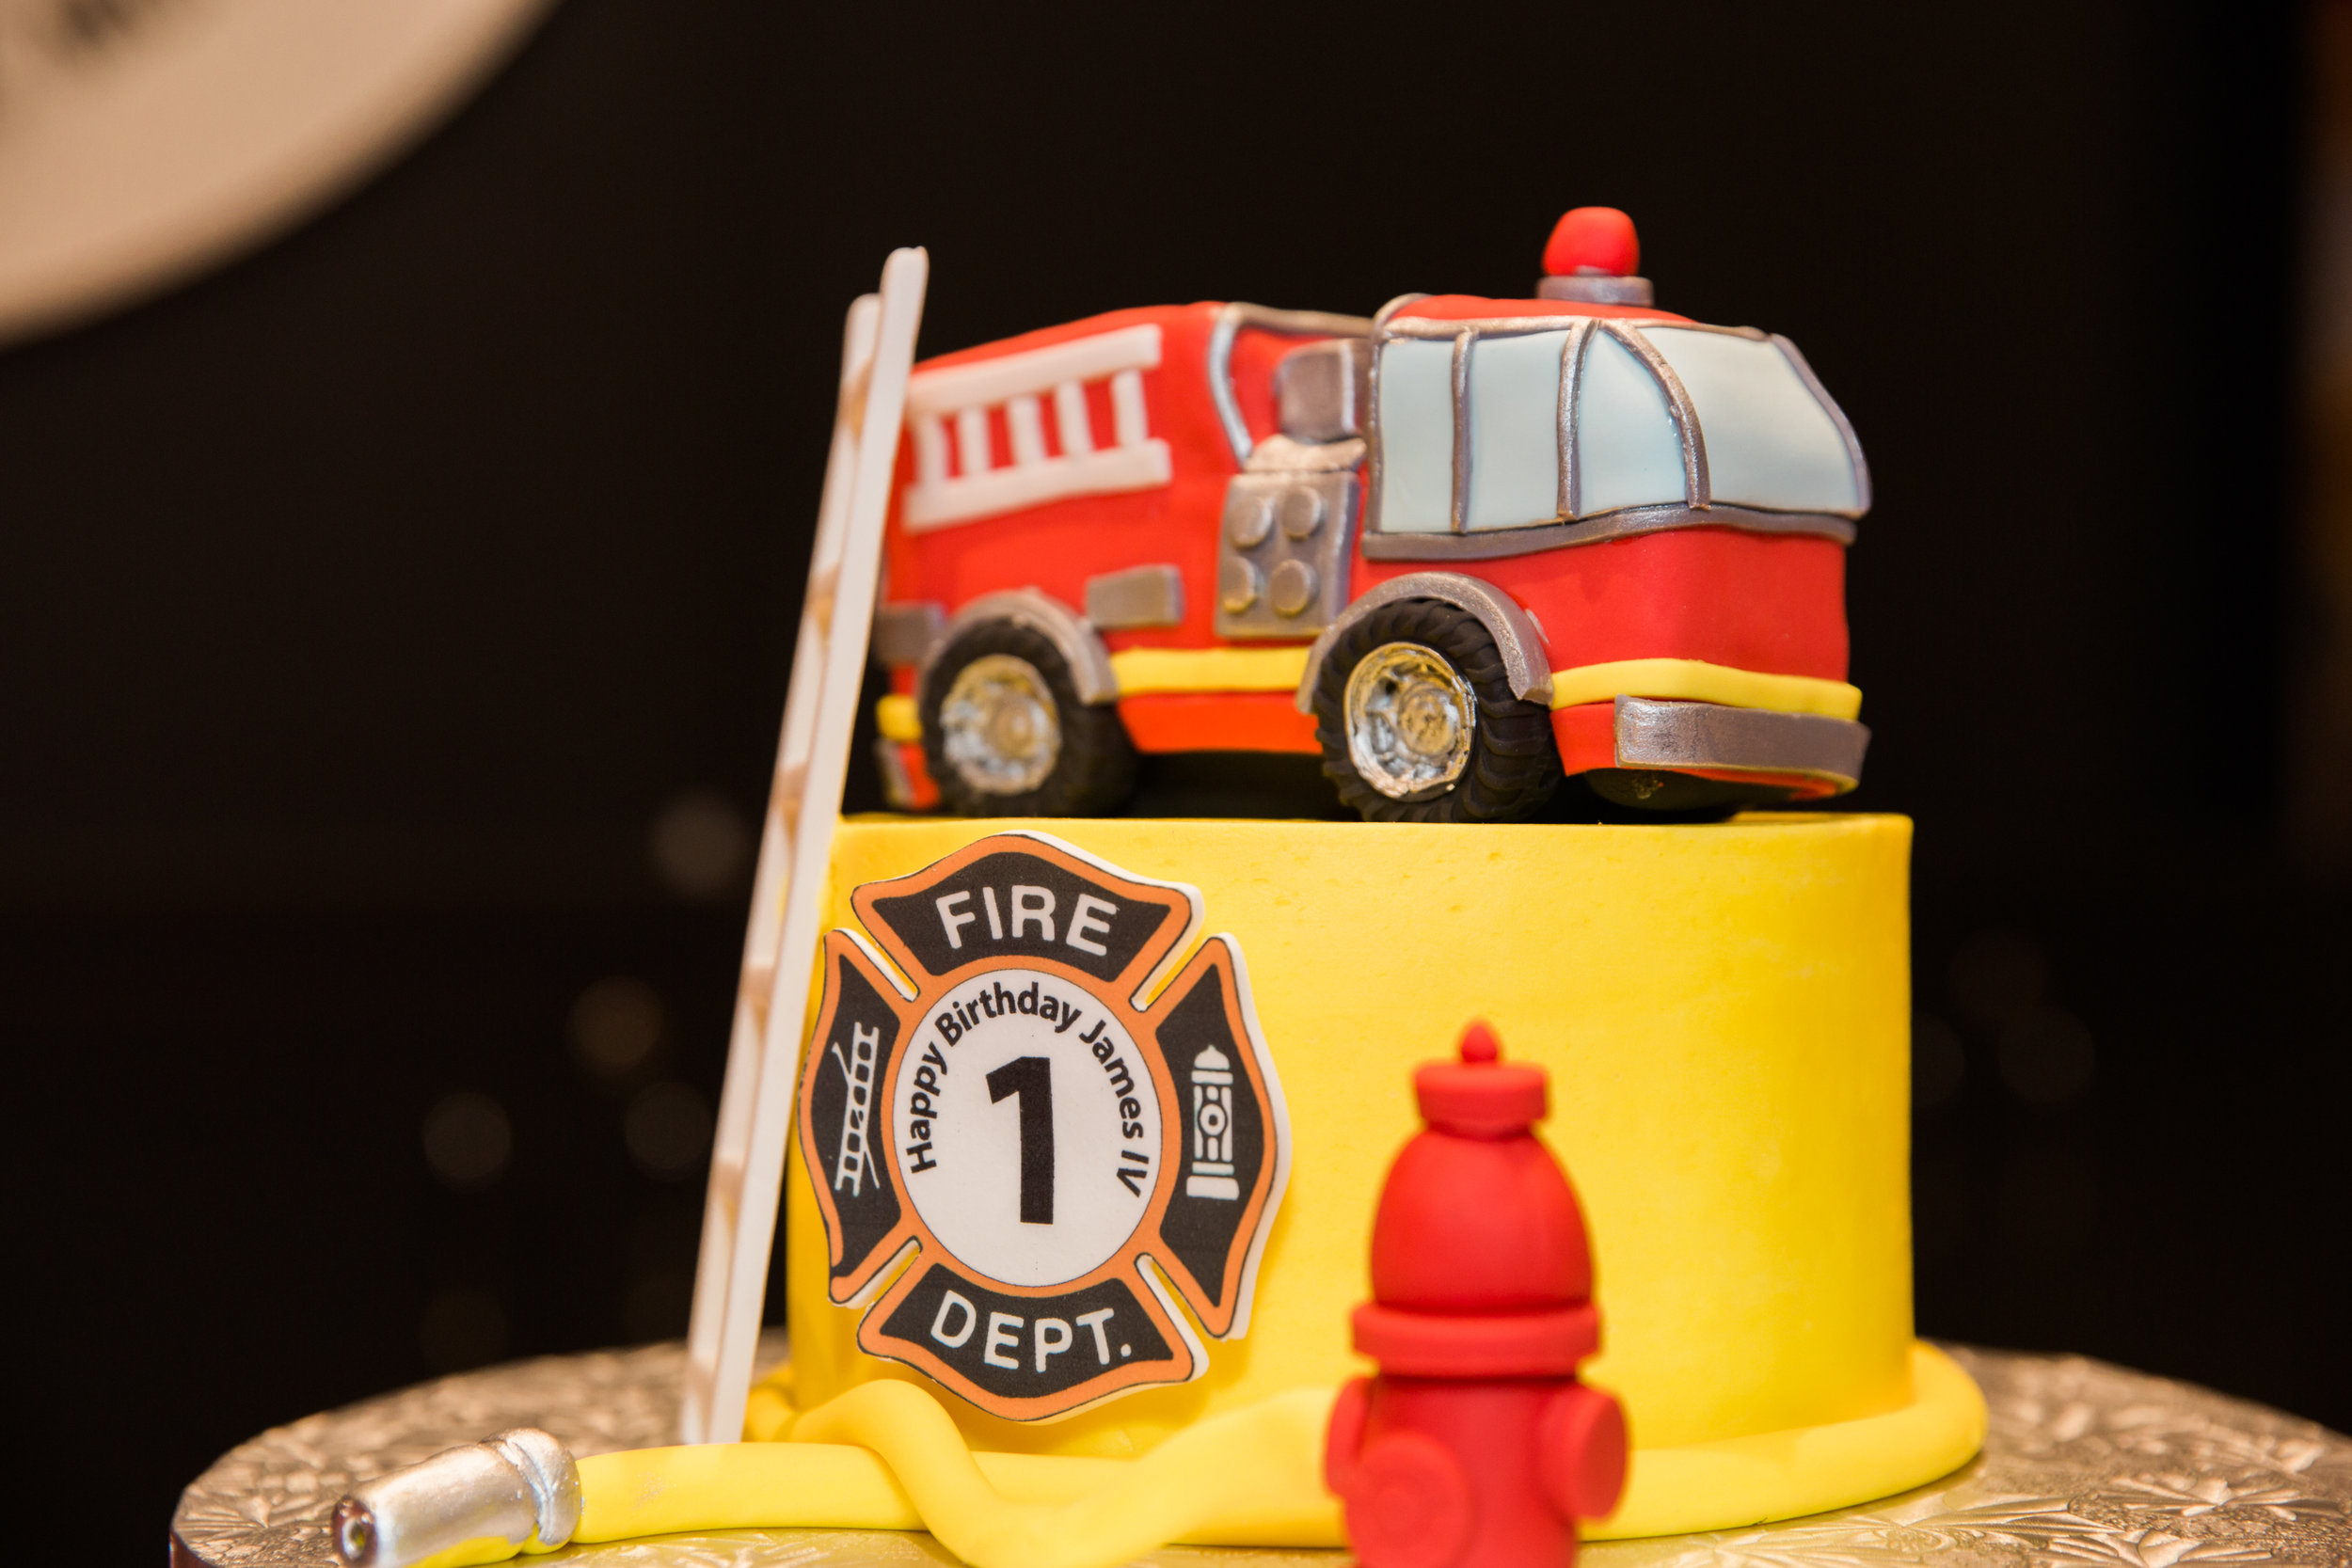 Fireman Birthday Party Ideas  Decorations Owings Mills Fire Department Maryland Family Photographers Megapixels Media Photography (34 of 55).jpg